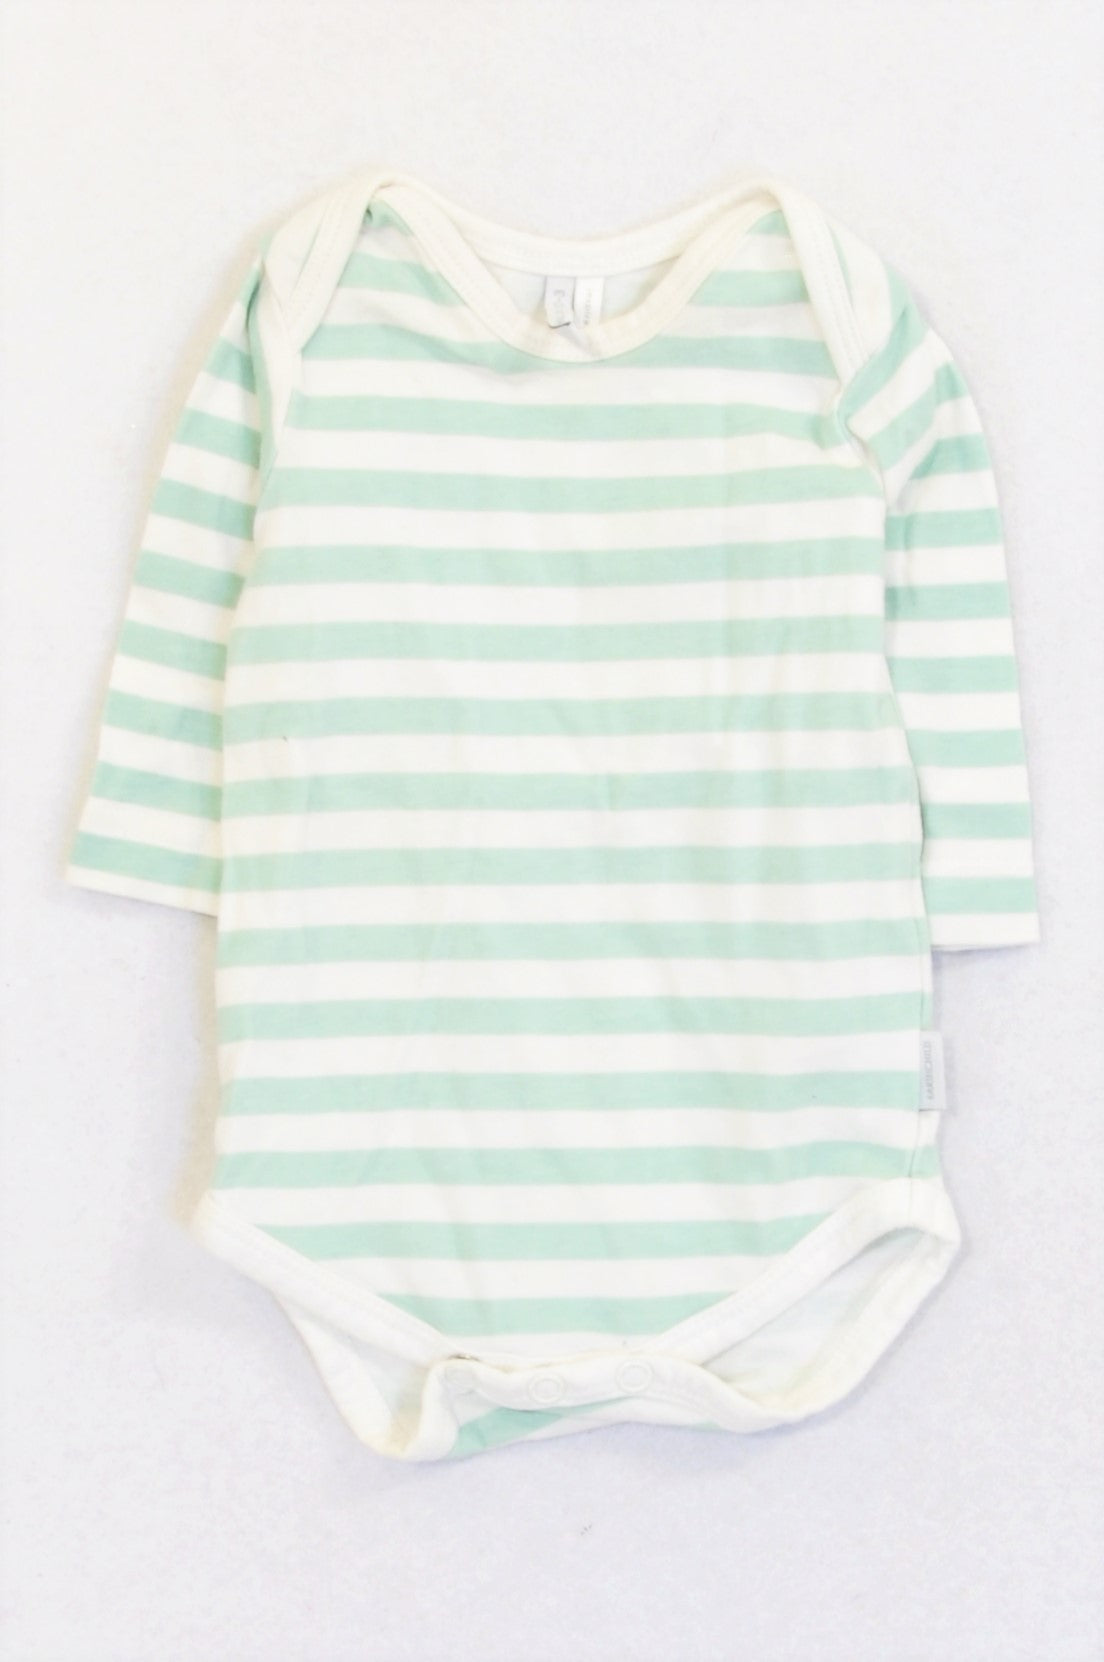 Earthchild Mint Striped Baby Grow Unisex 0-3 months